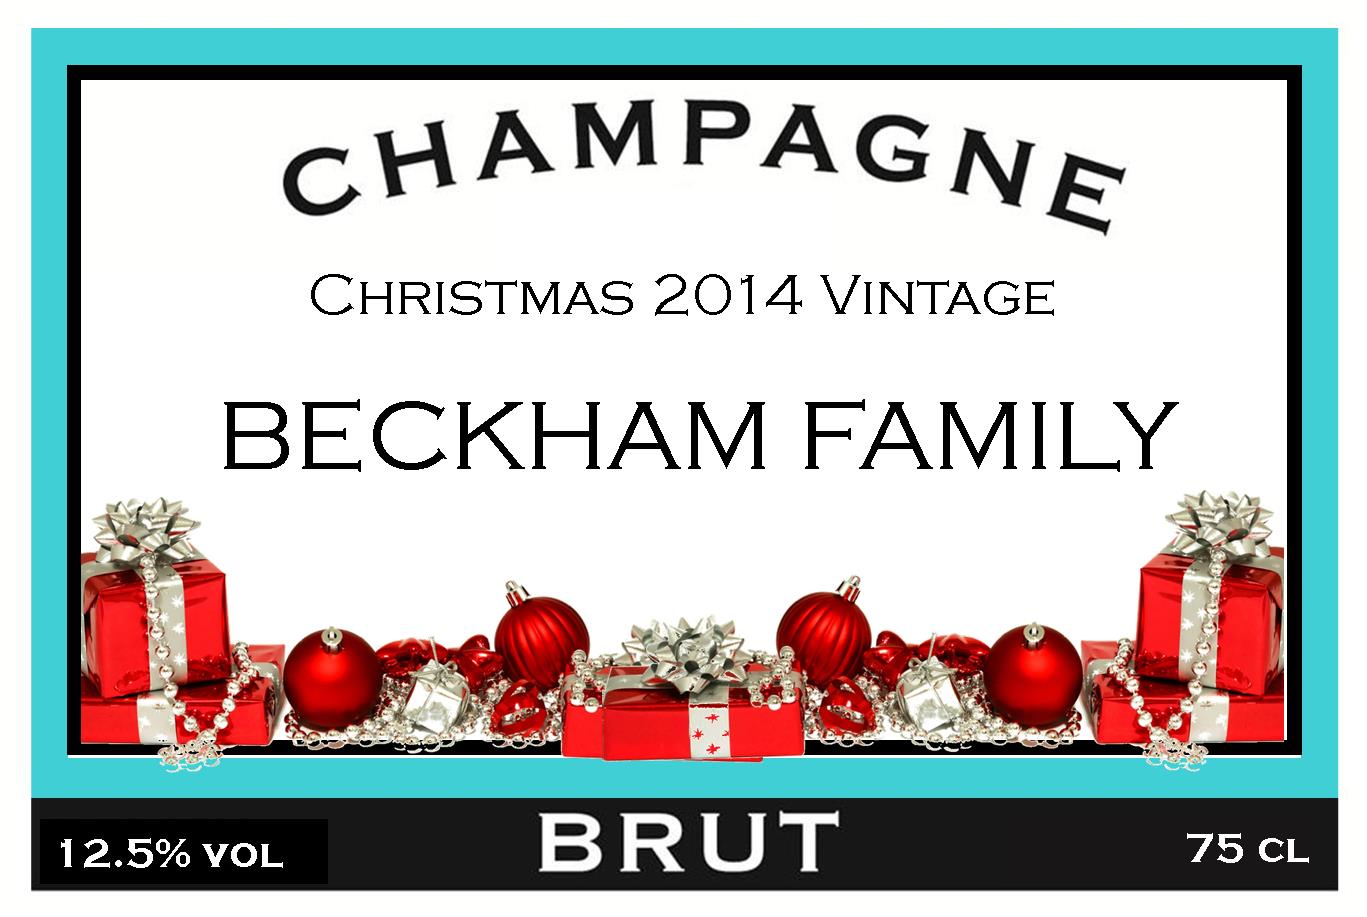 classic-personalised-christmas-champagne-label8